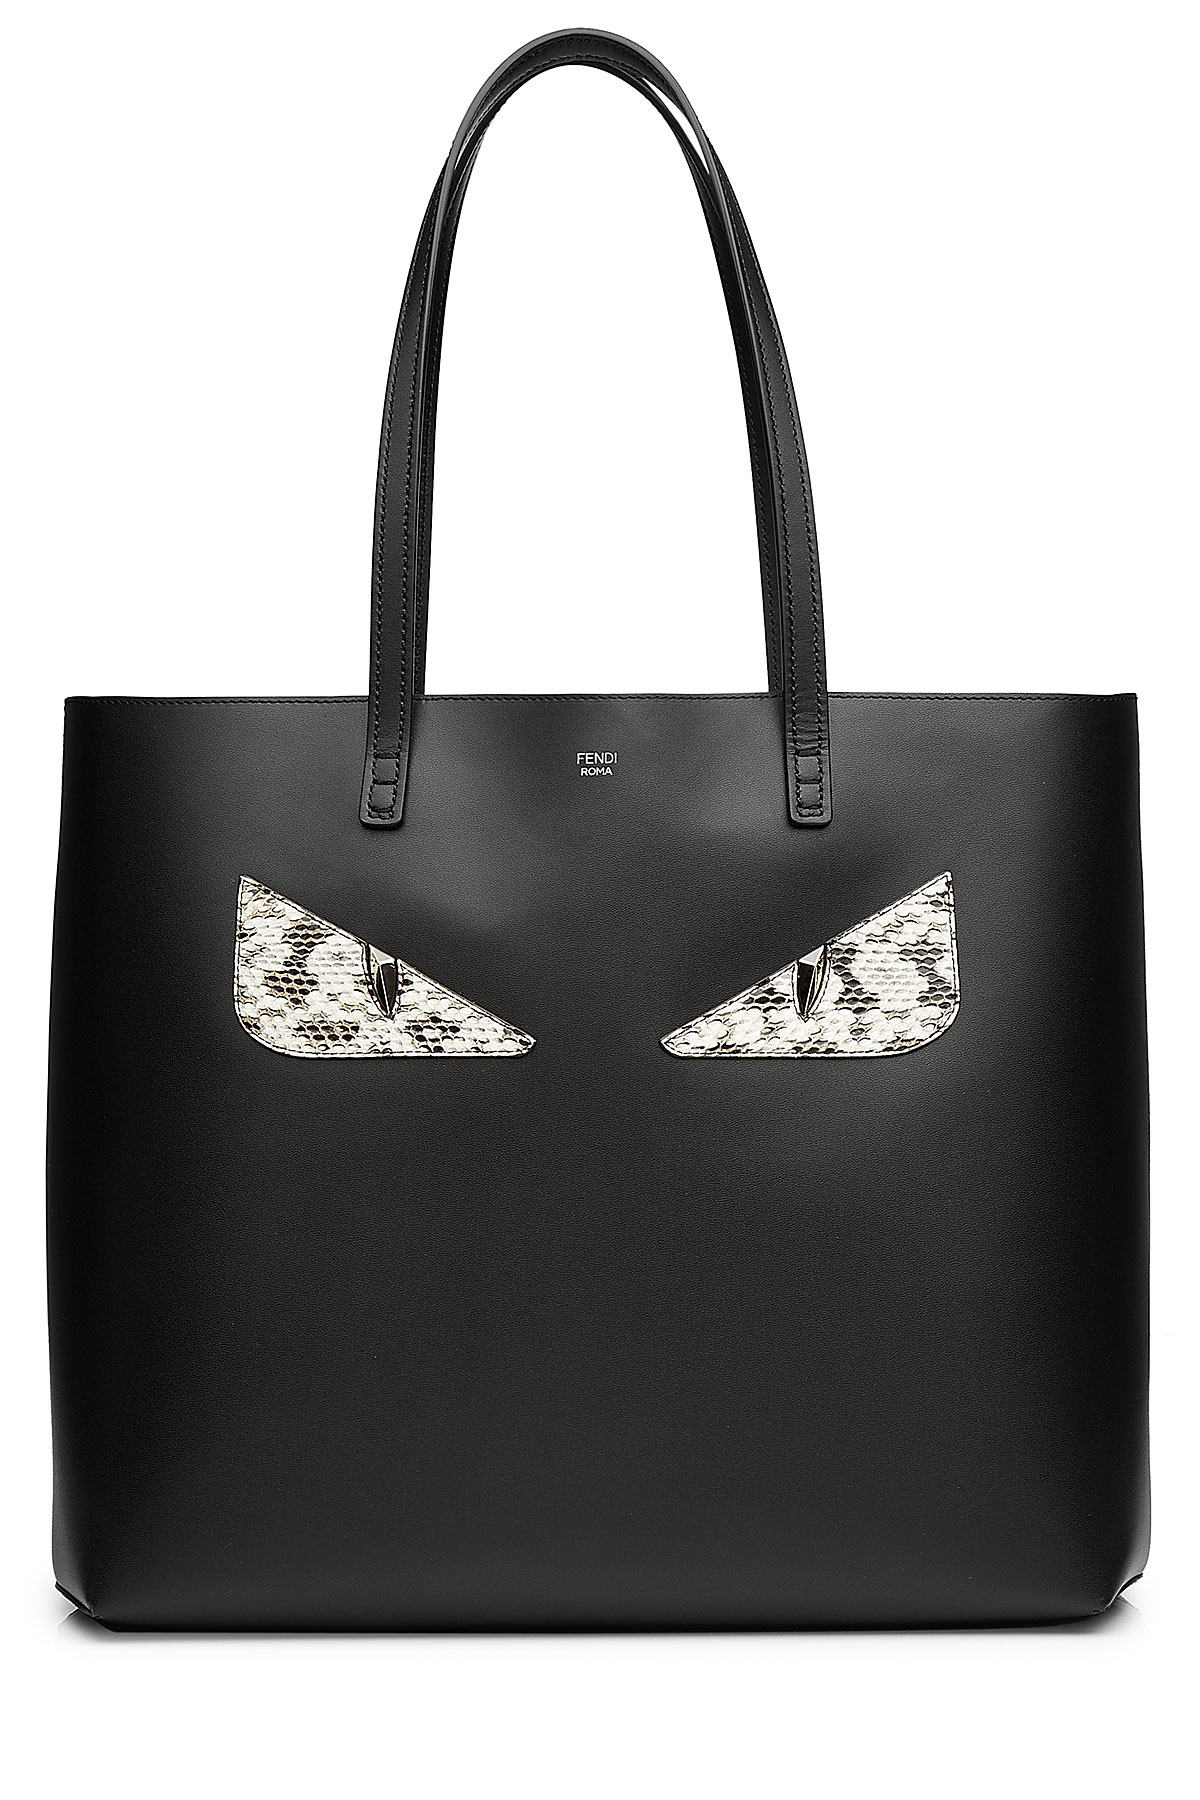 Fendi Black Monster Tote  b5f0ce8e86f24